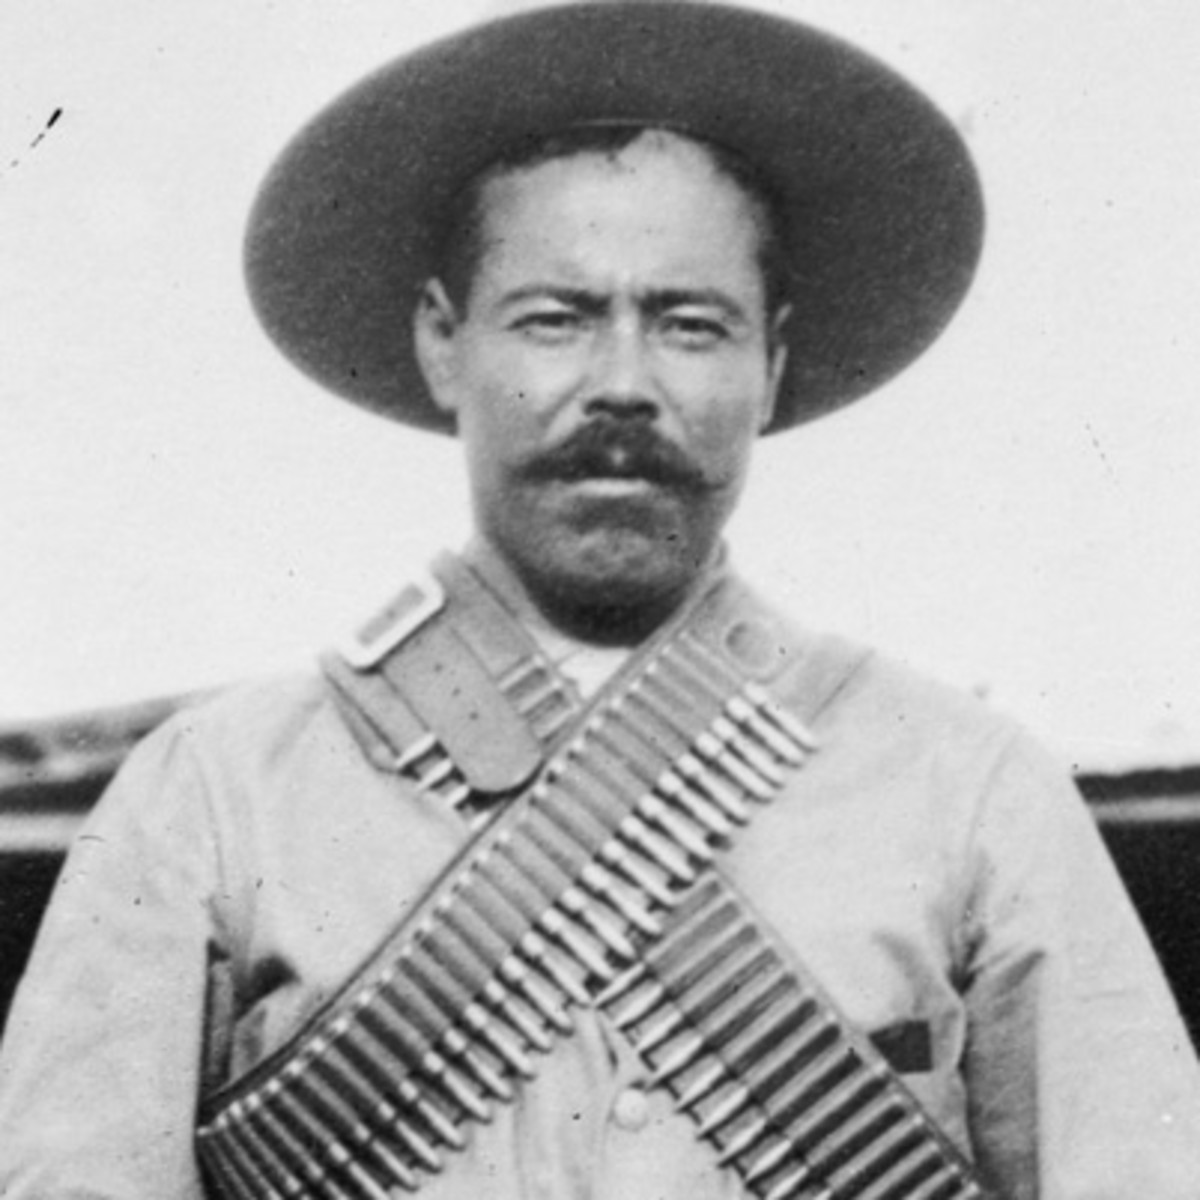 pancho villa military leader biography